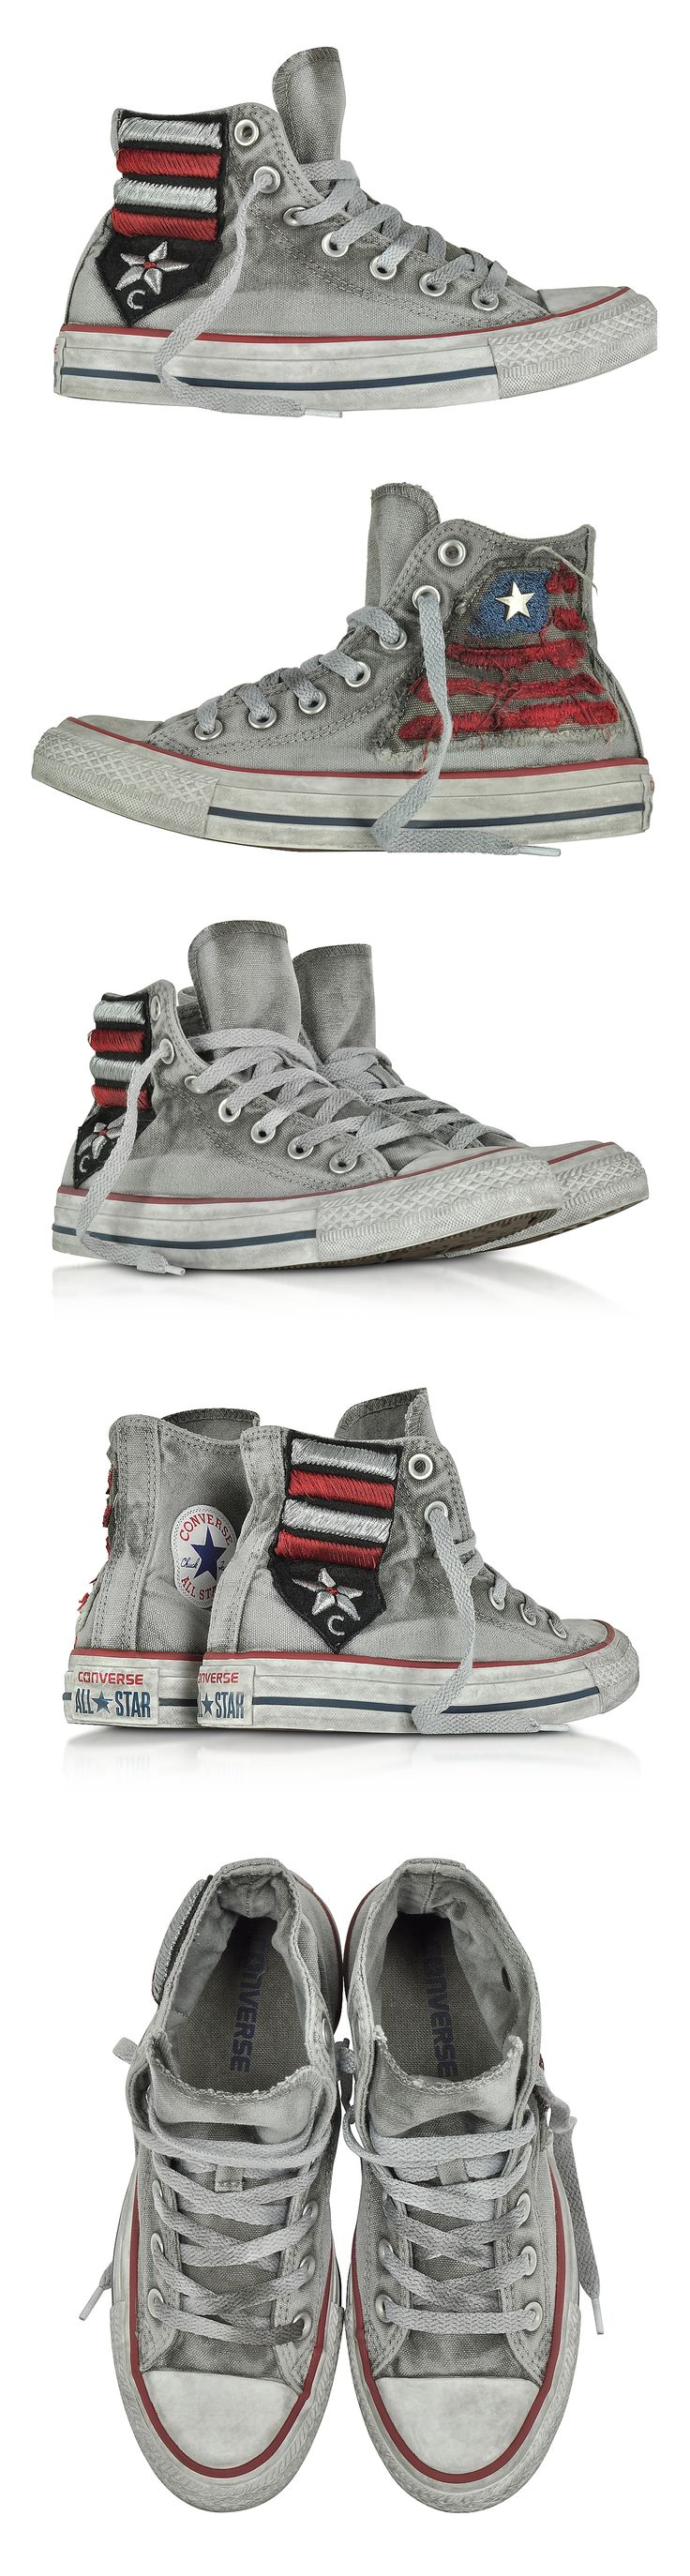 Converse Limited Edition Chuck Taylor All Star High Vintage Flag Patchwork Canvas LTD Unisex Sneakers